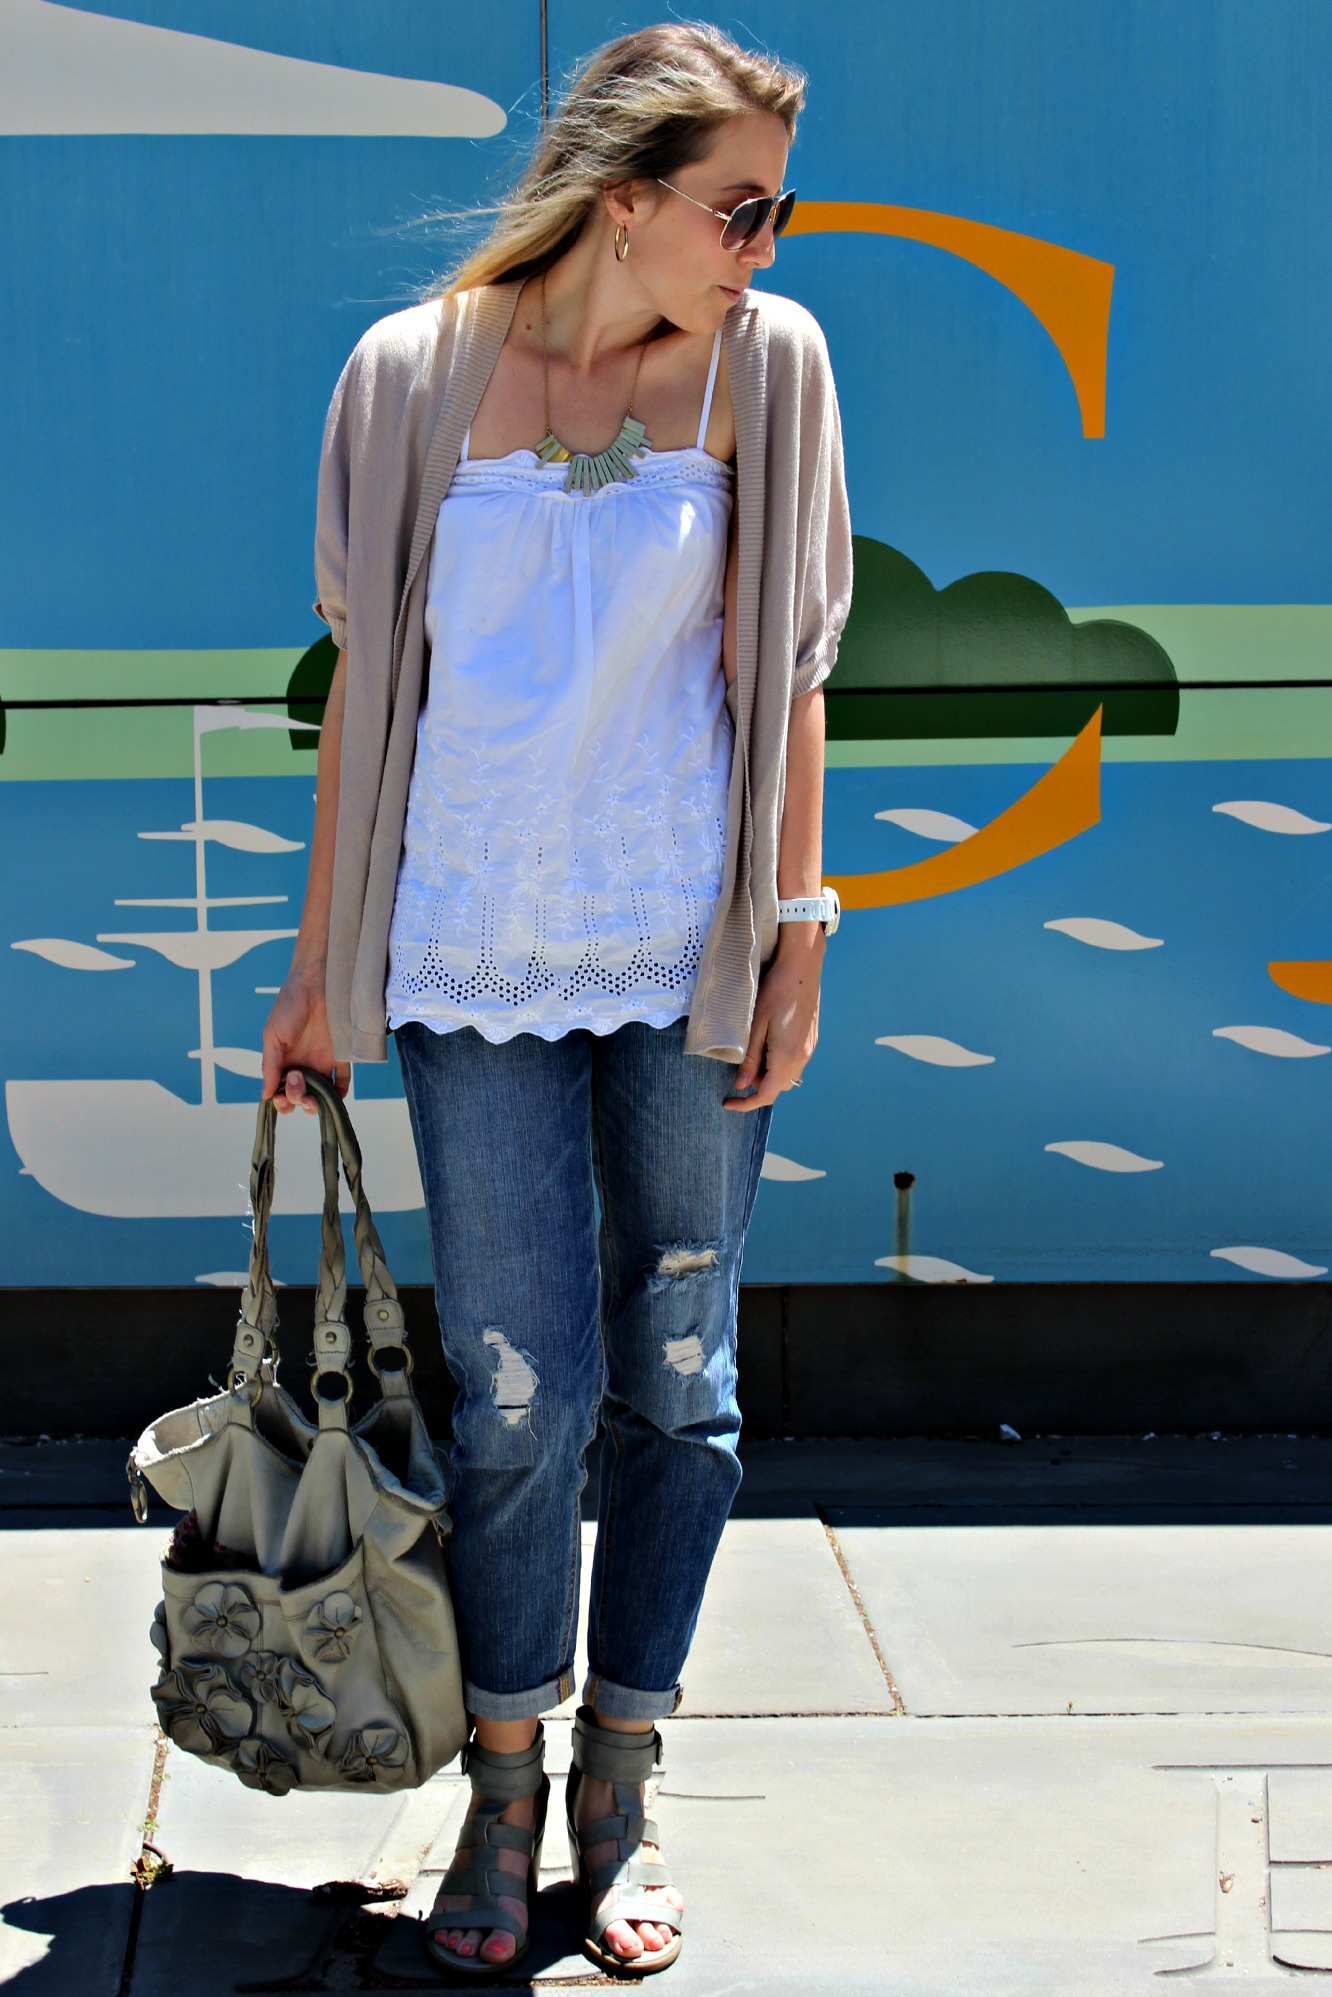 Five Easy Spring Outfits for Any Occasion // a Saturday outing to the farmer's market